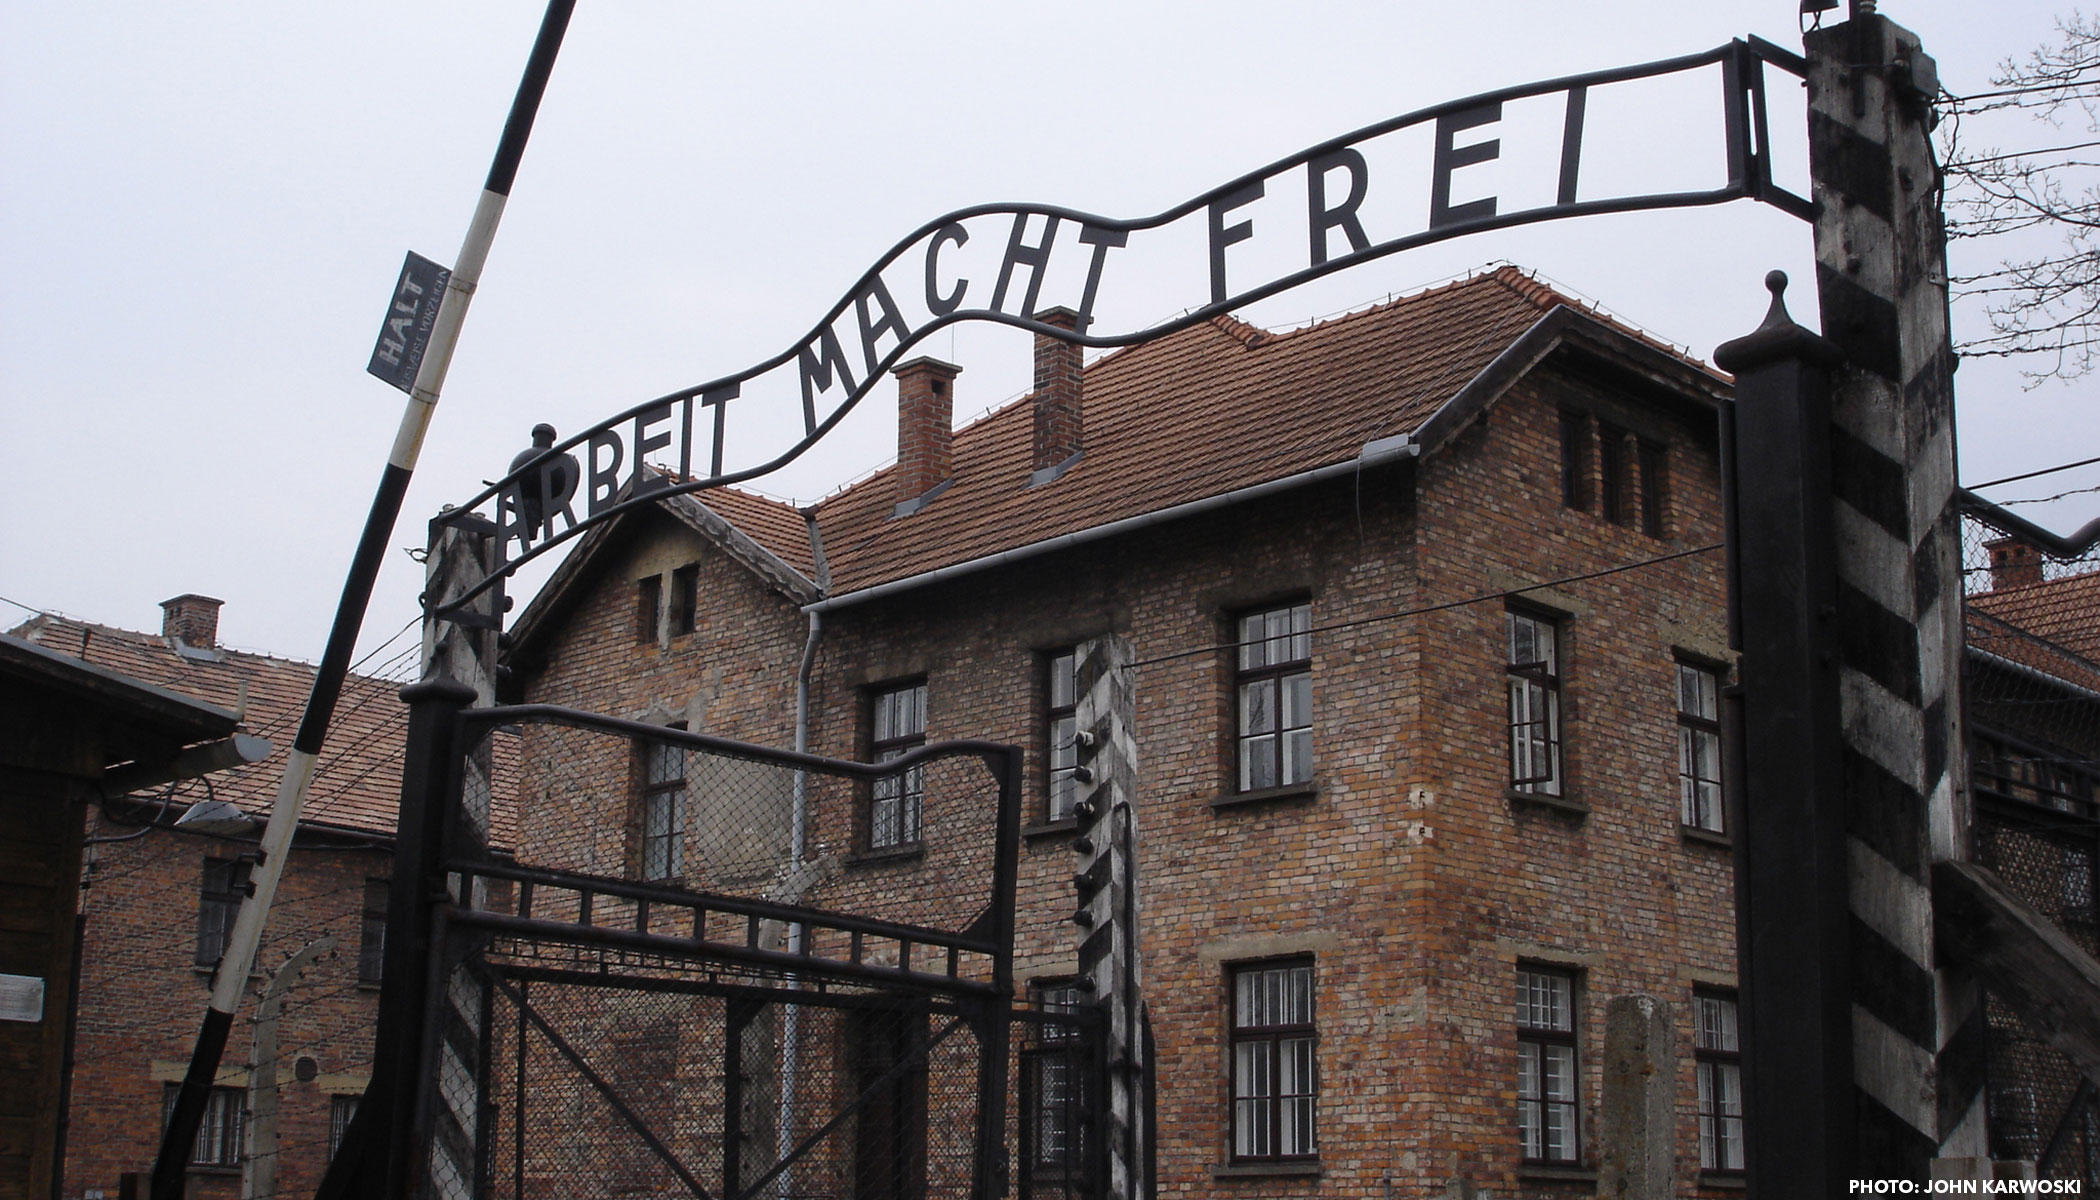 FIRST-EVER 50-STATE SURVEY ON HOLOCAUST KNOWLEDGE OF AMERICAN MILLENNIALS AND GEN Z REVEALS SHOCKING RESULTS